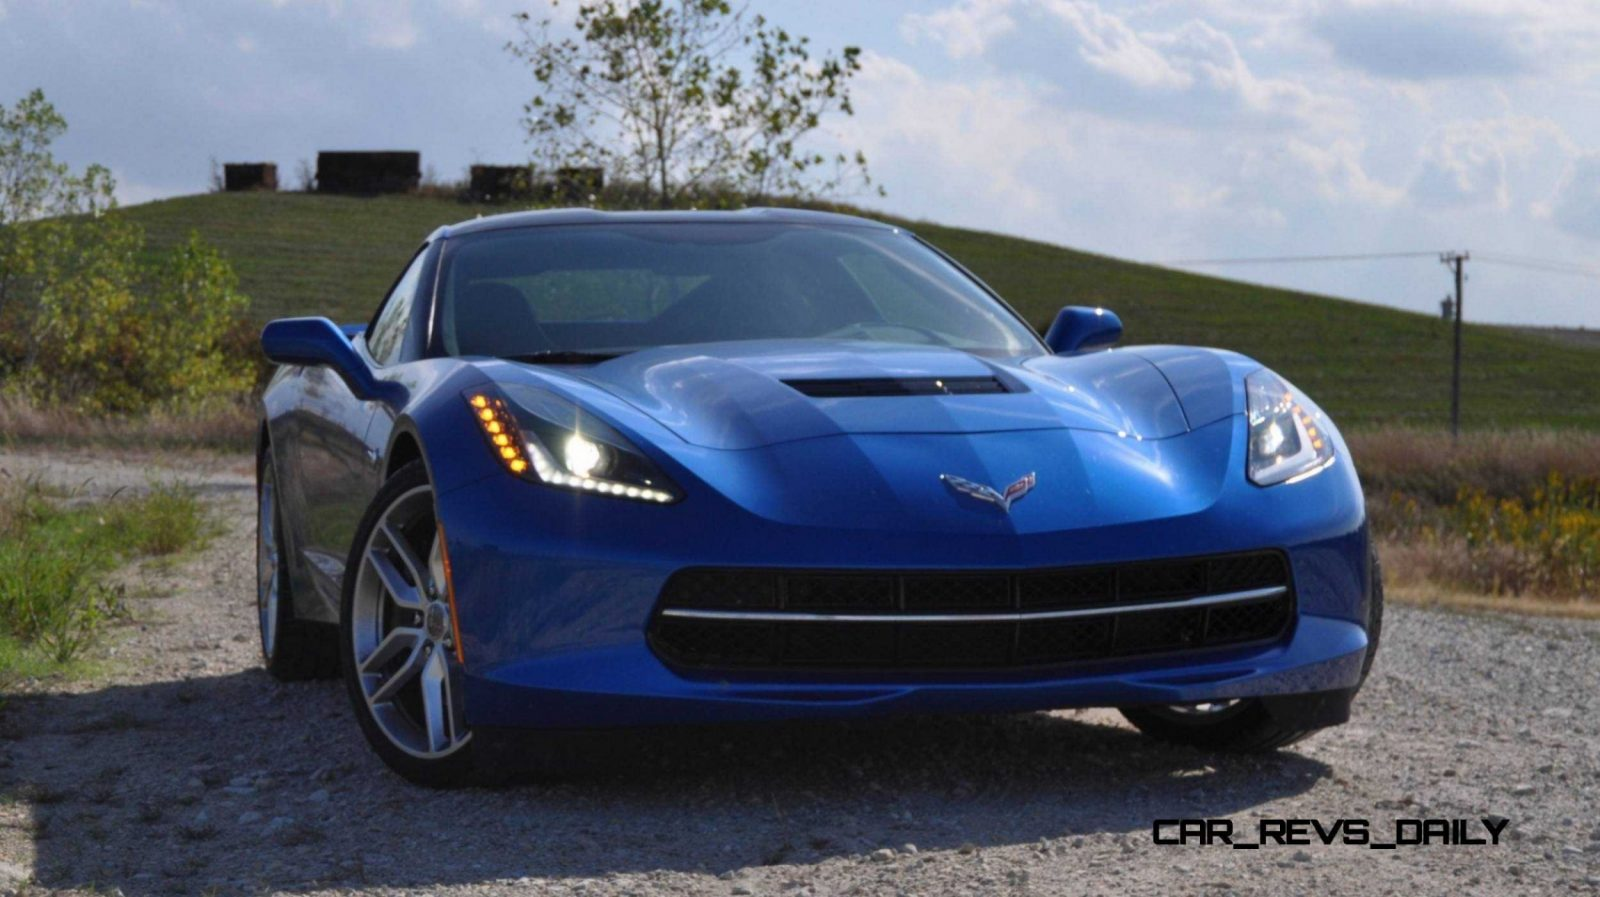 2014 Chevrolet Corvette Stingray Z51 >> 2014 Chevrolet Corvette Stingray Z51 in 102 Super-High-Res